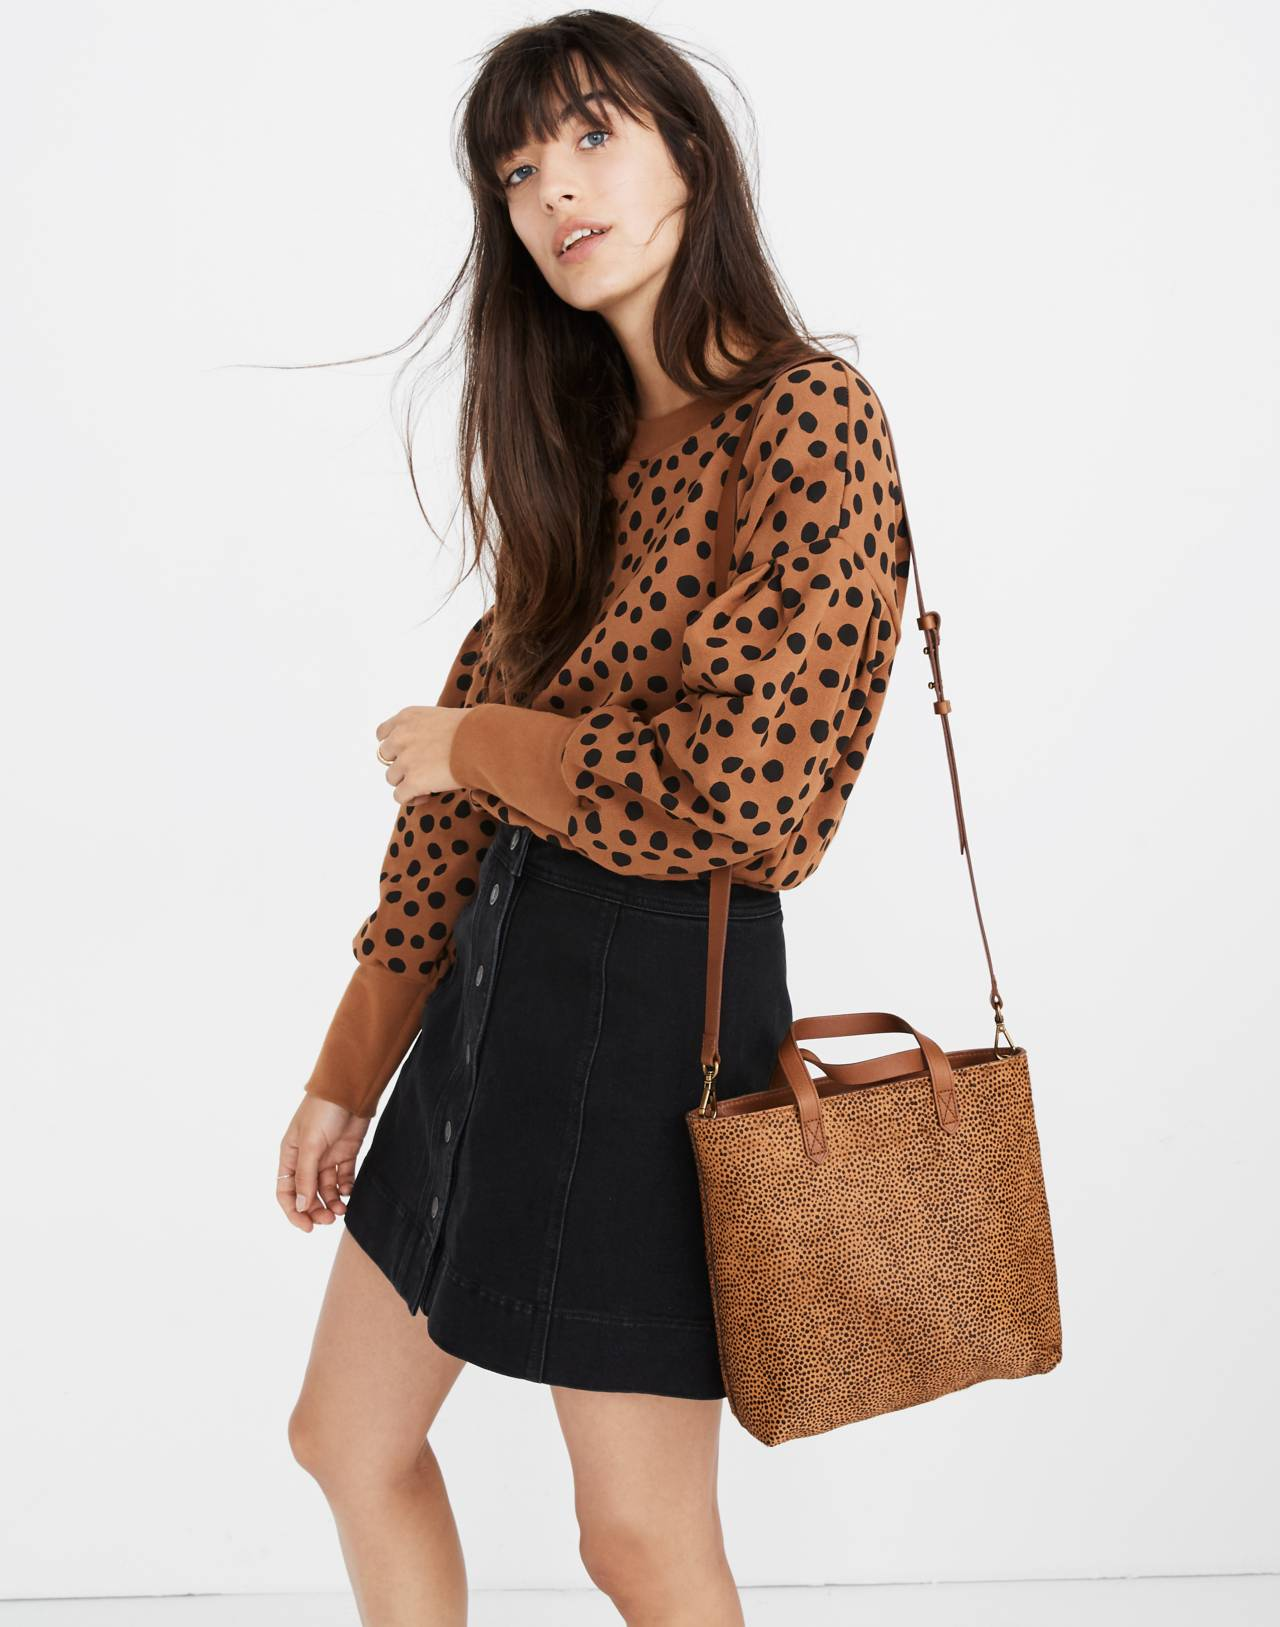 The Zip-Top Transport Crossbody in Spotted Calf Hair in bittersweet image 2